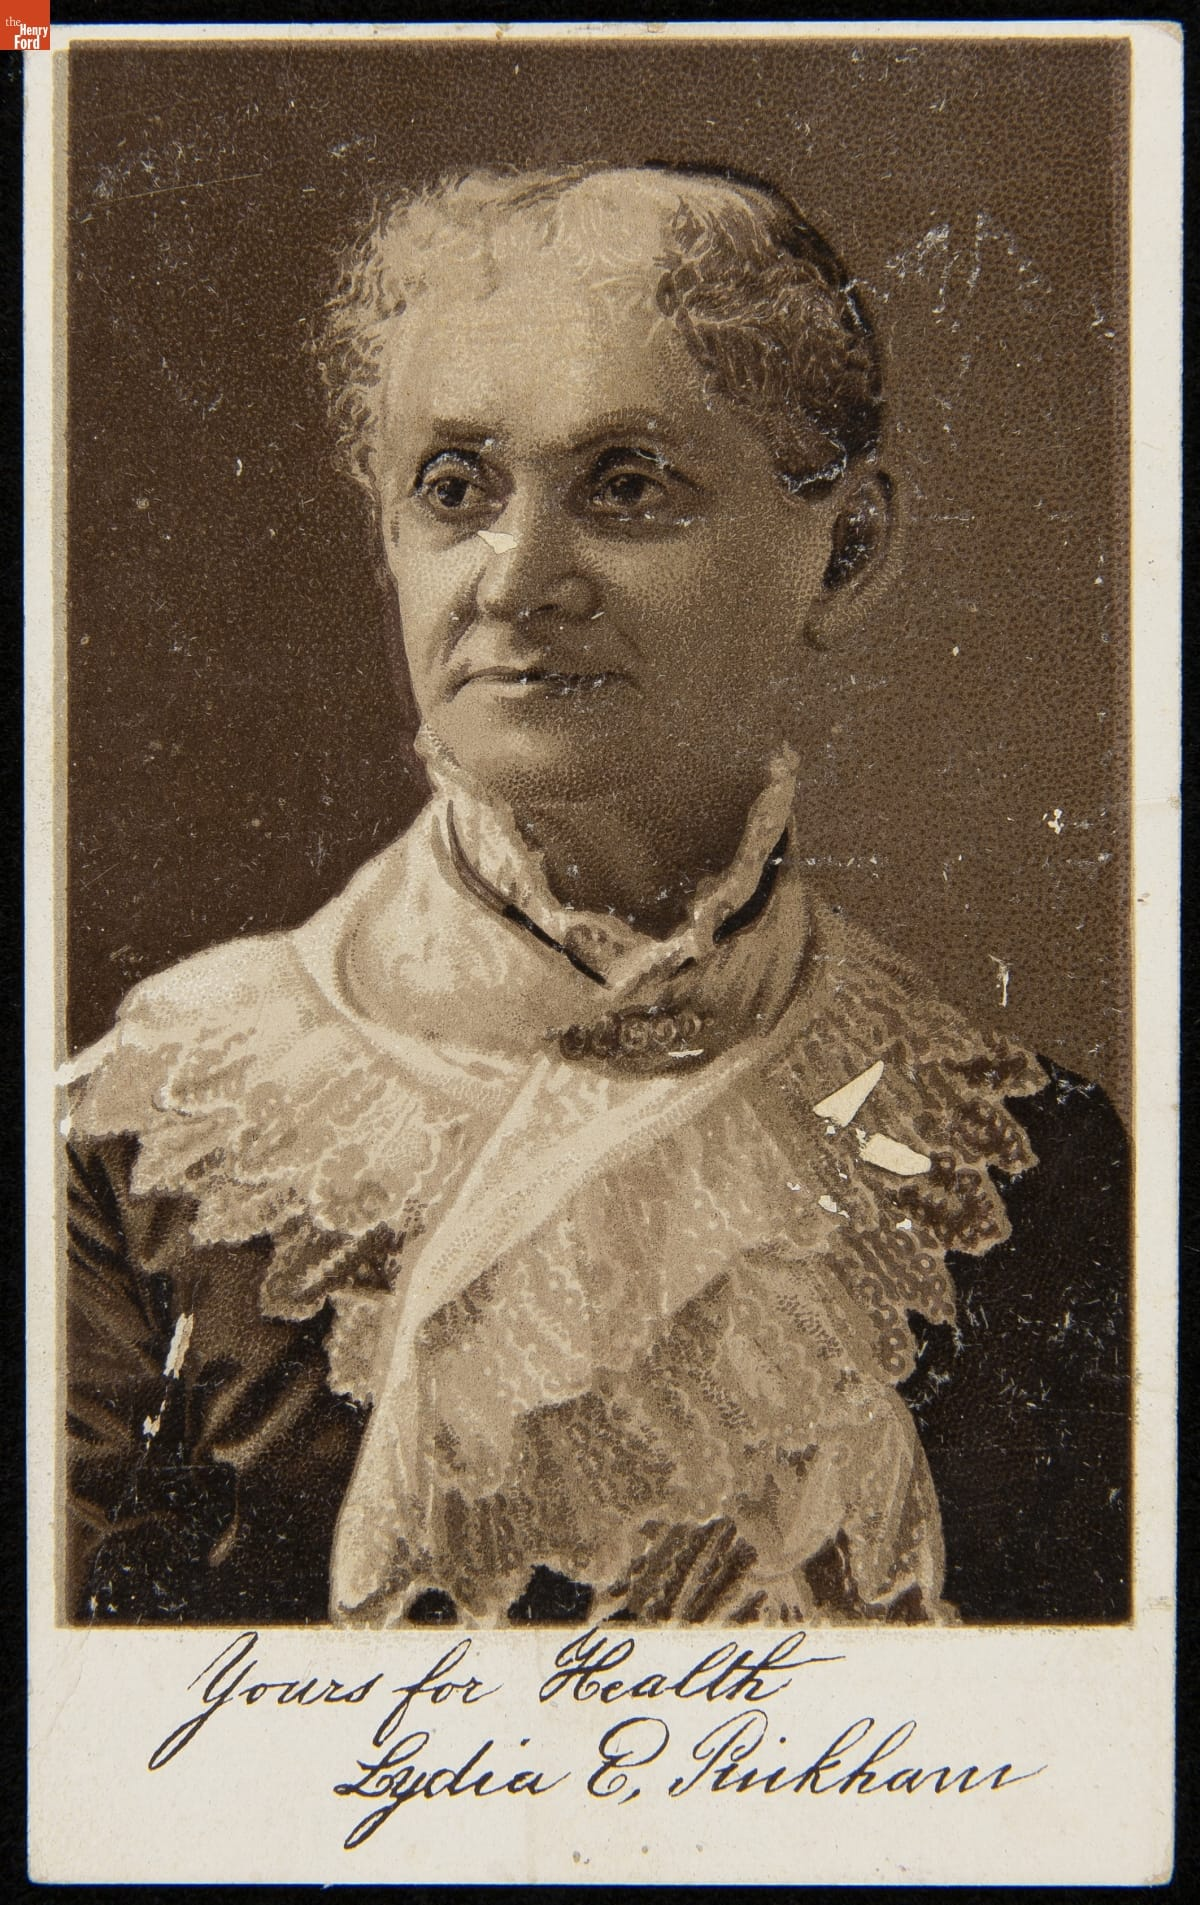 Torso and head of woman with elaborate lacy scarf pinned around her neck and chest; handwritten text